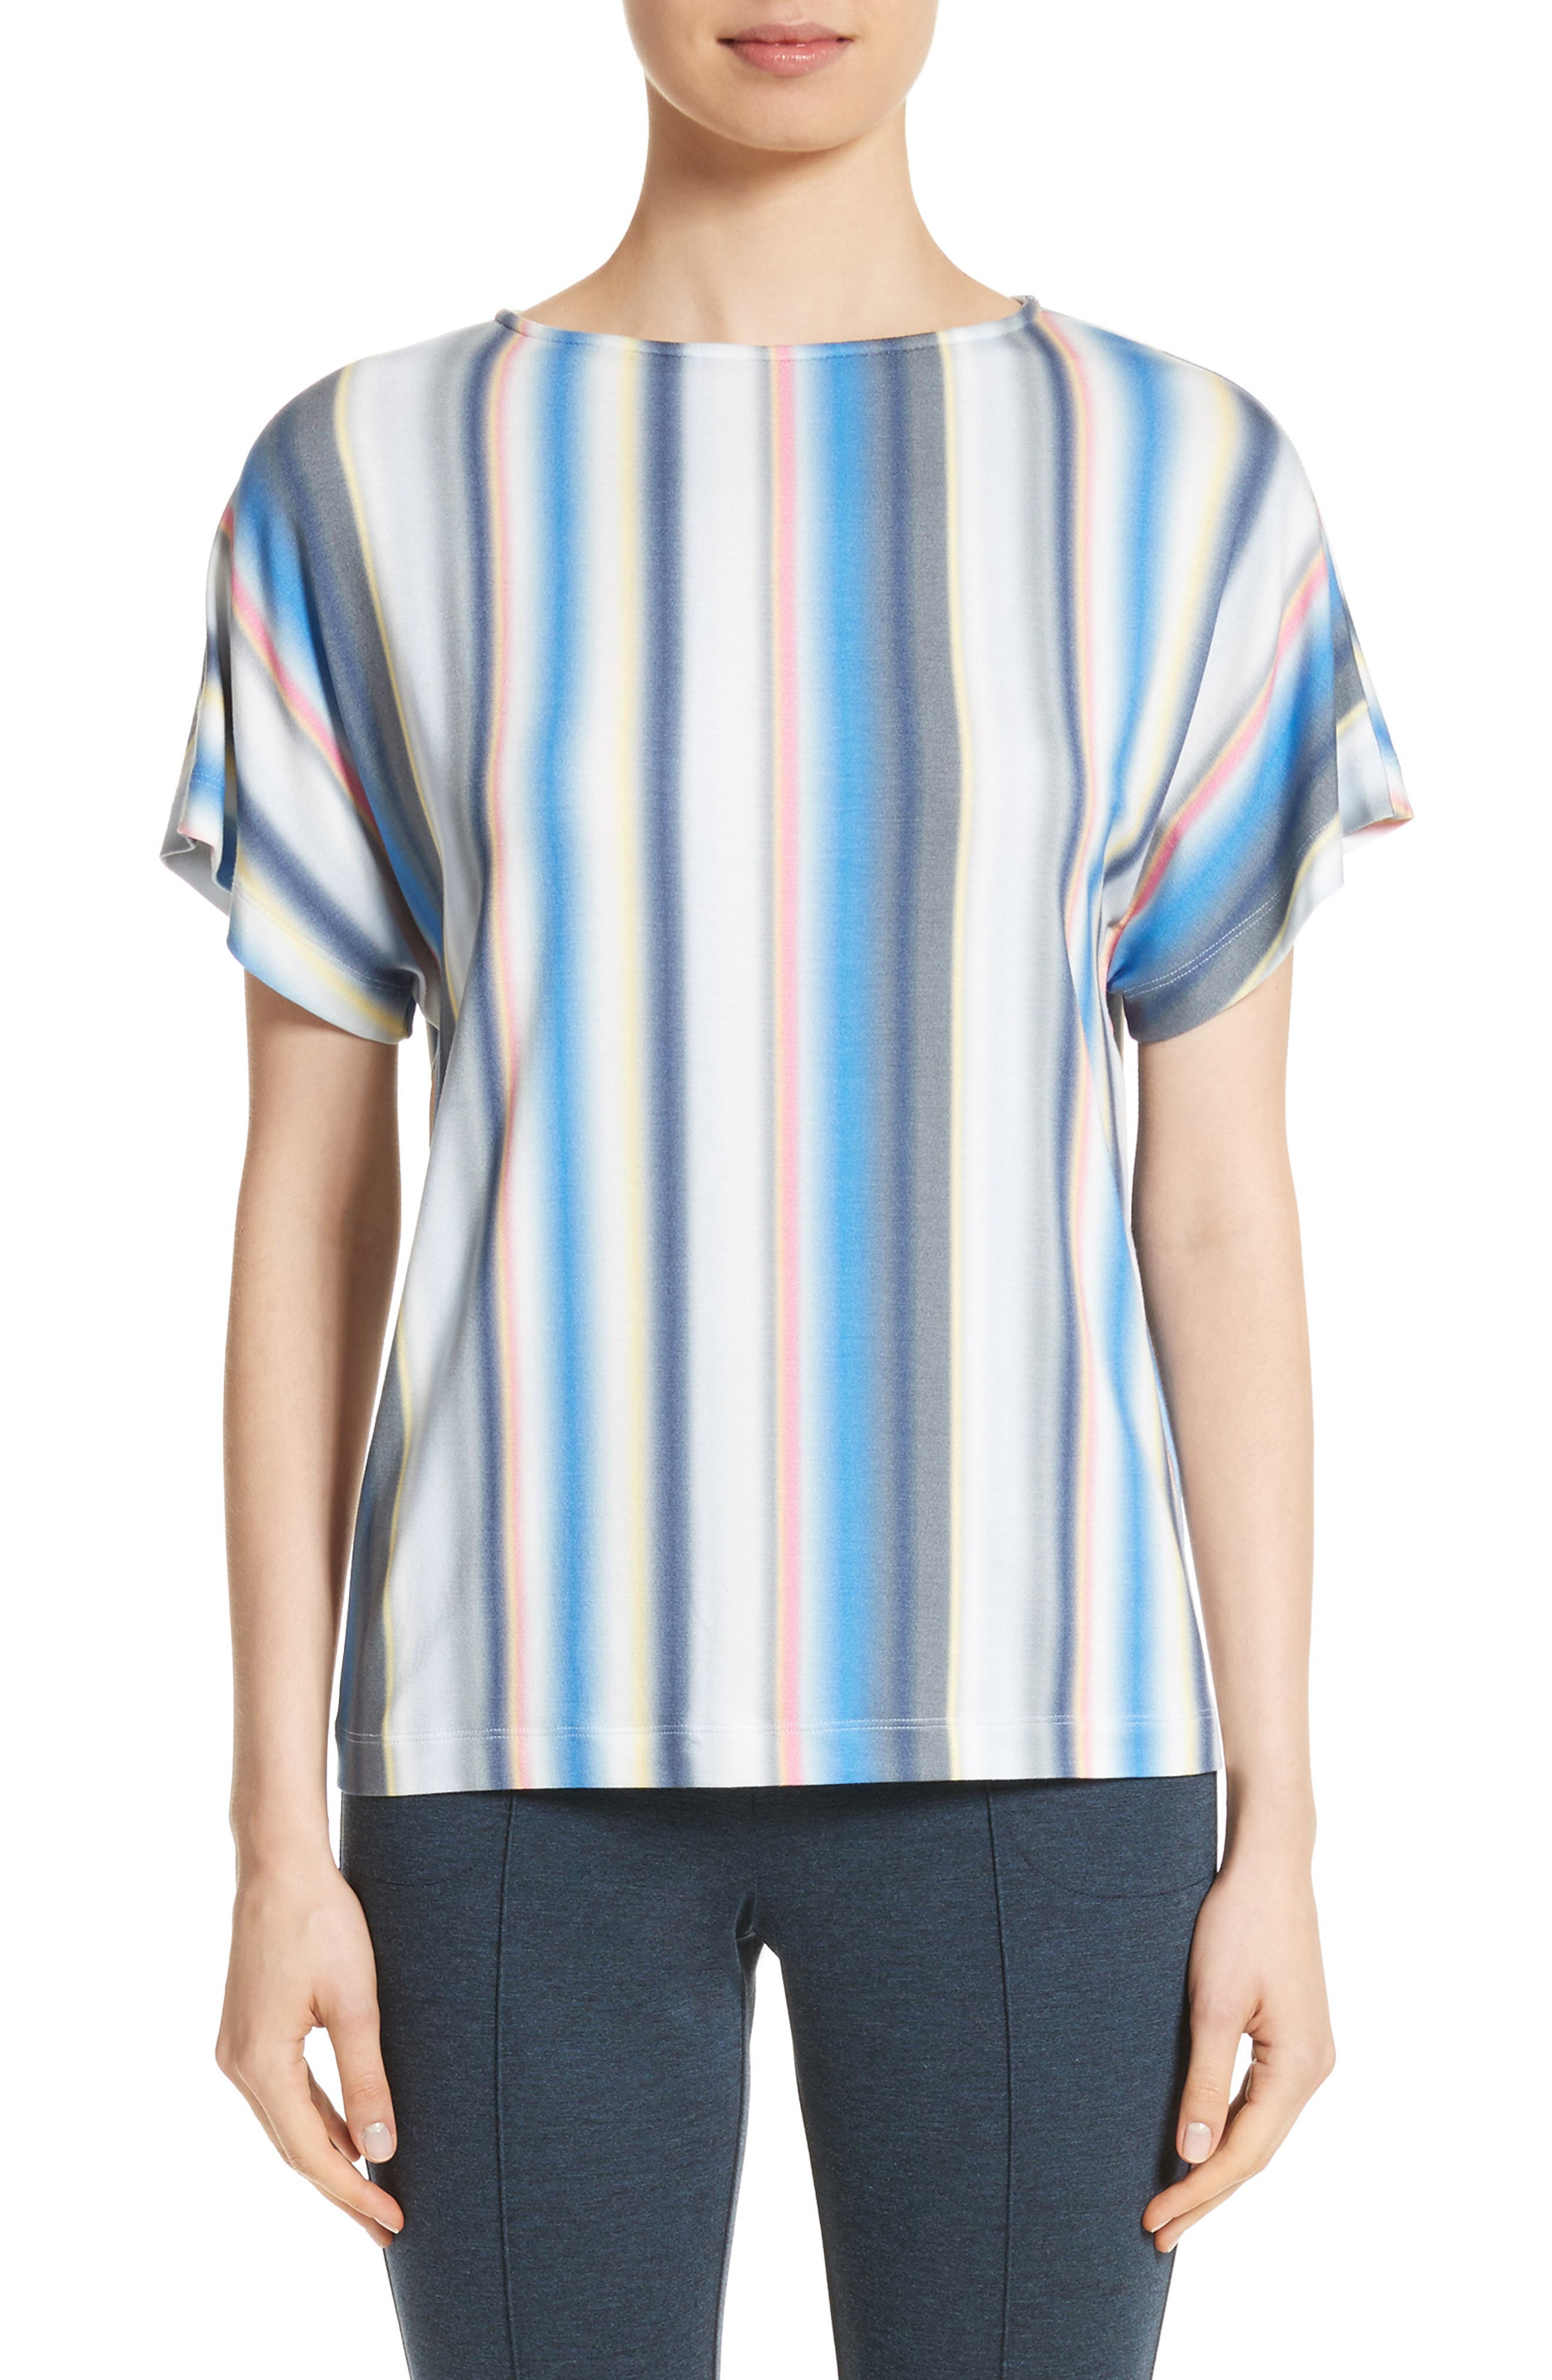 St. John Collection Blurred Stripe Jersey Top